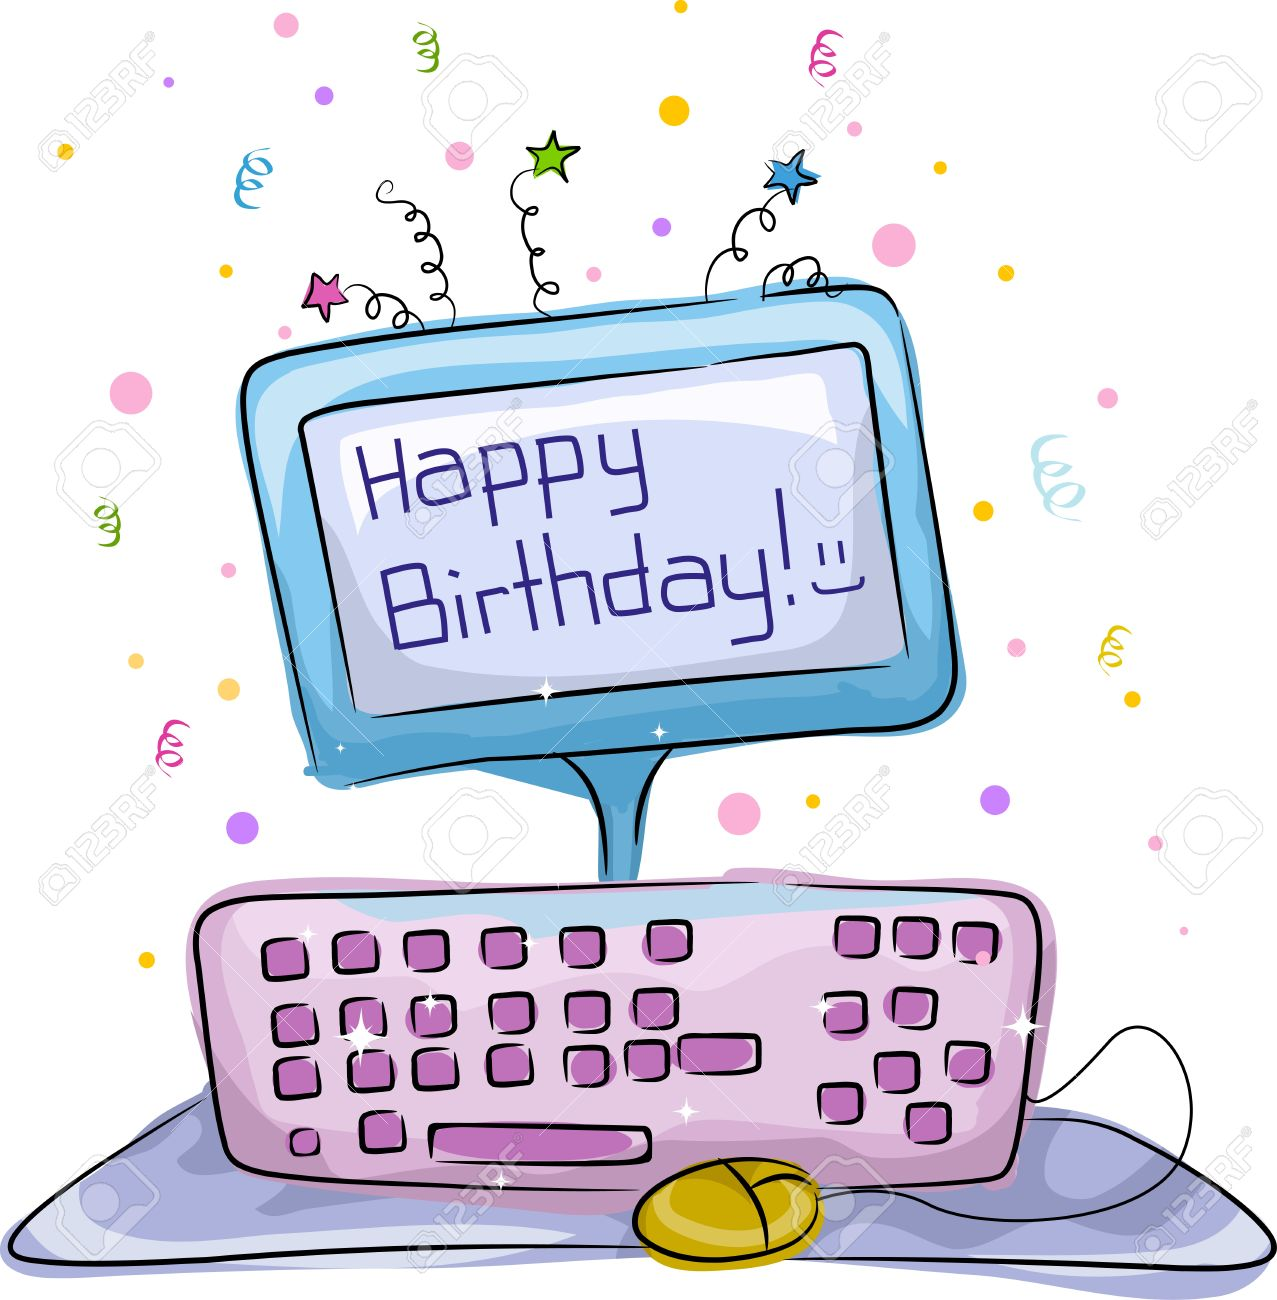 Computer birthday cake clipart svg royalty free download Illustration Of A Birthday Cake With A Computer Theme Stock Photo ... svg royalty free download